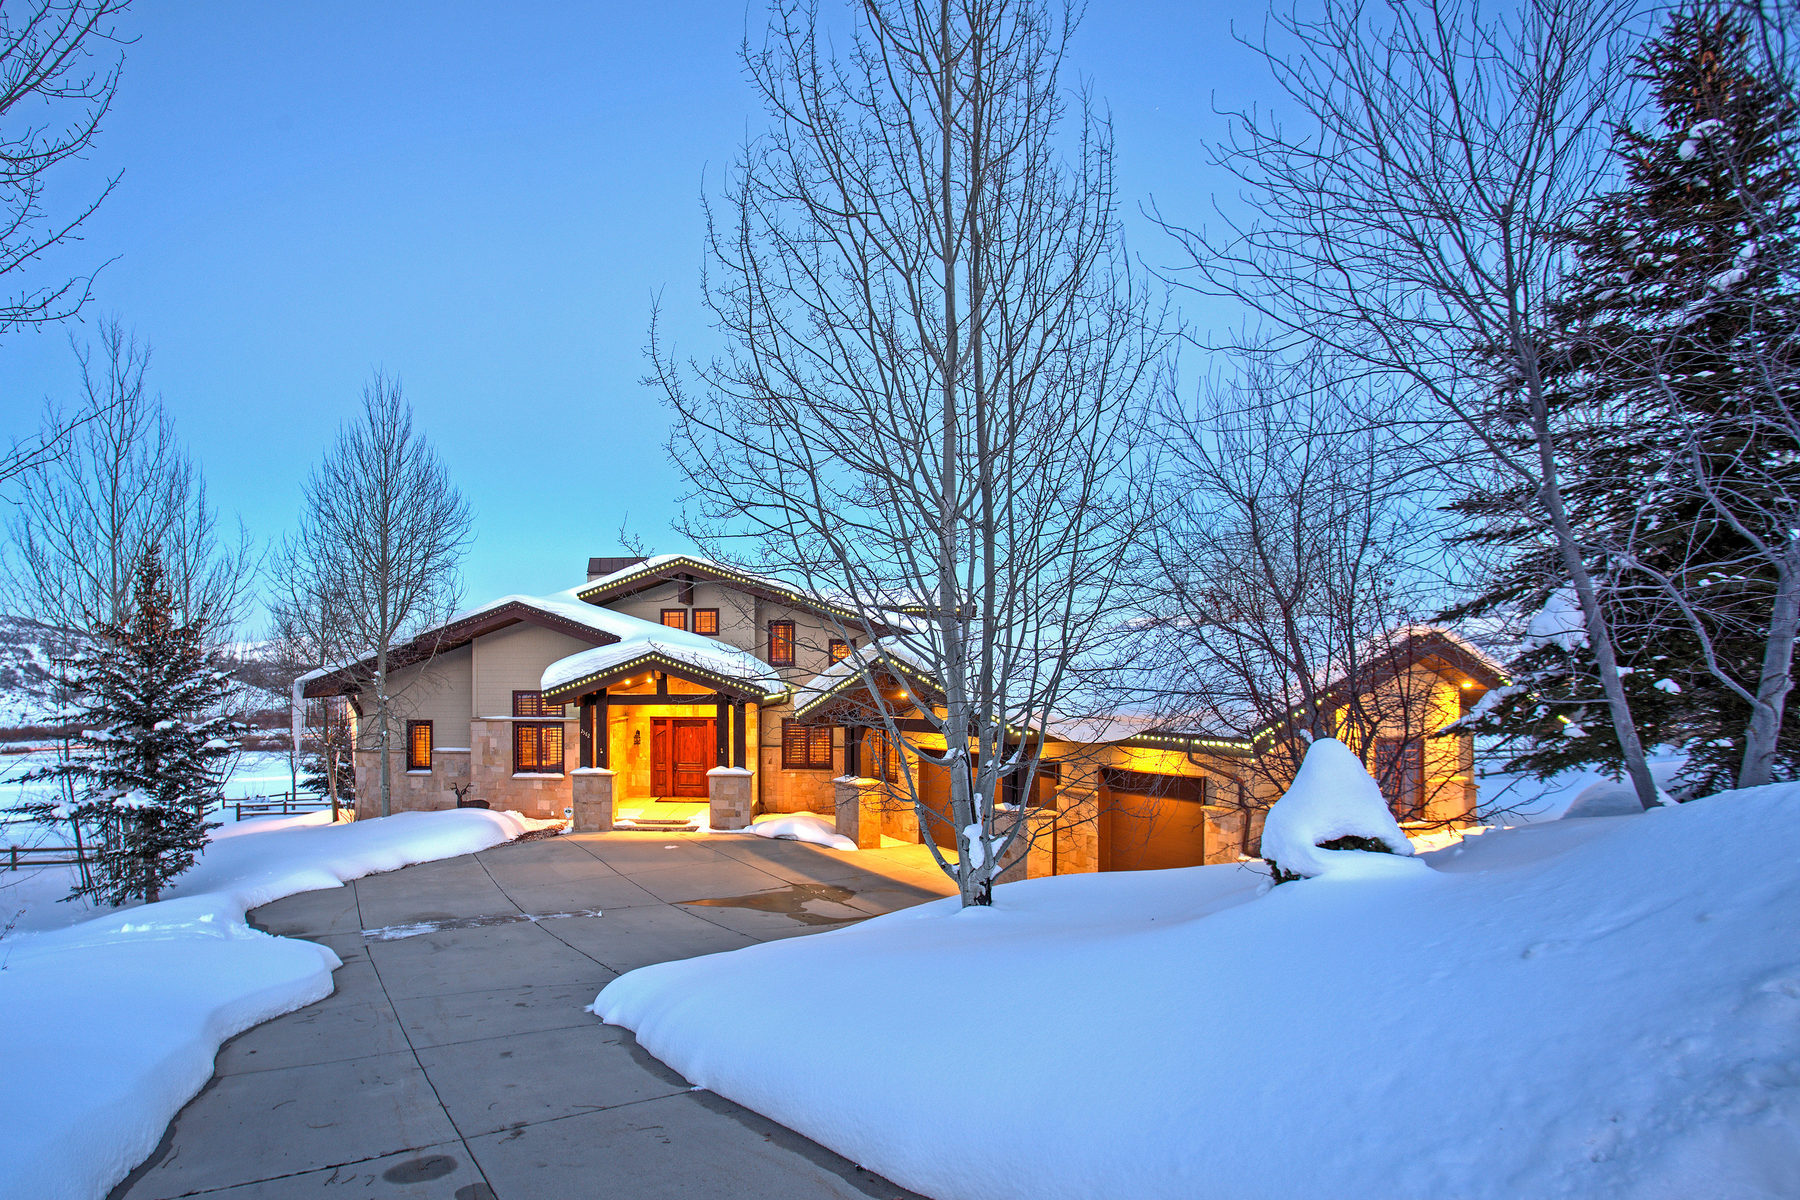 Single Family Home for Sale at Stunning Entertainer's Residence in the Heart of Park City 2582 Aspen Springs Dr Park City, Utah 84060 United States